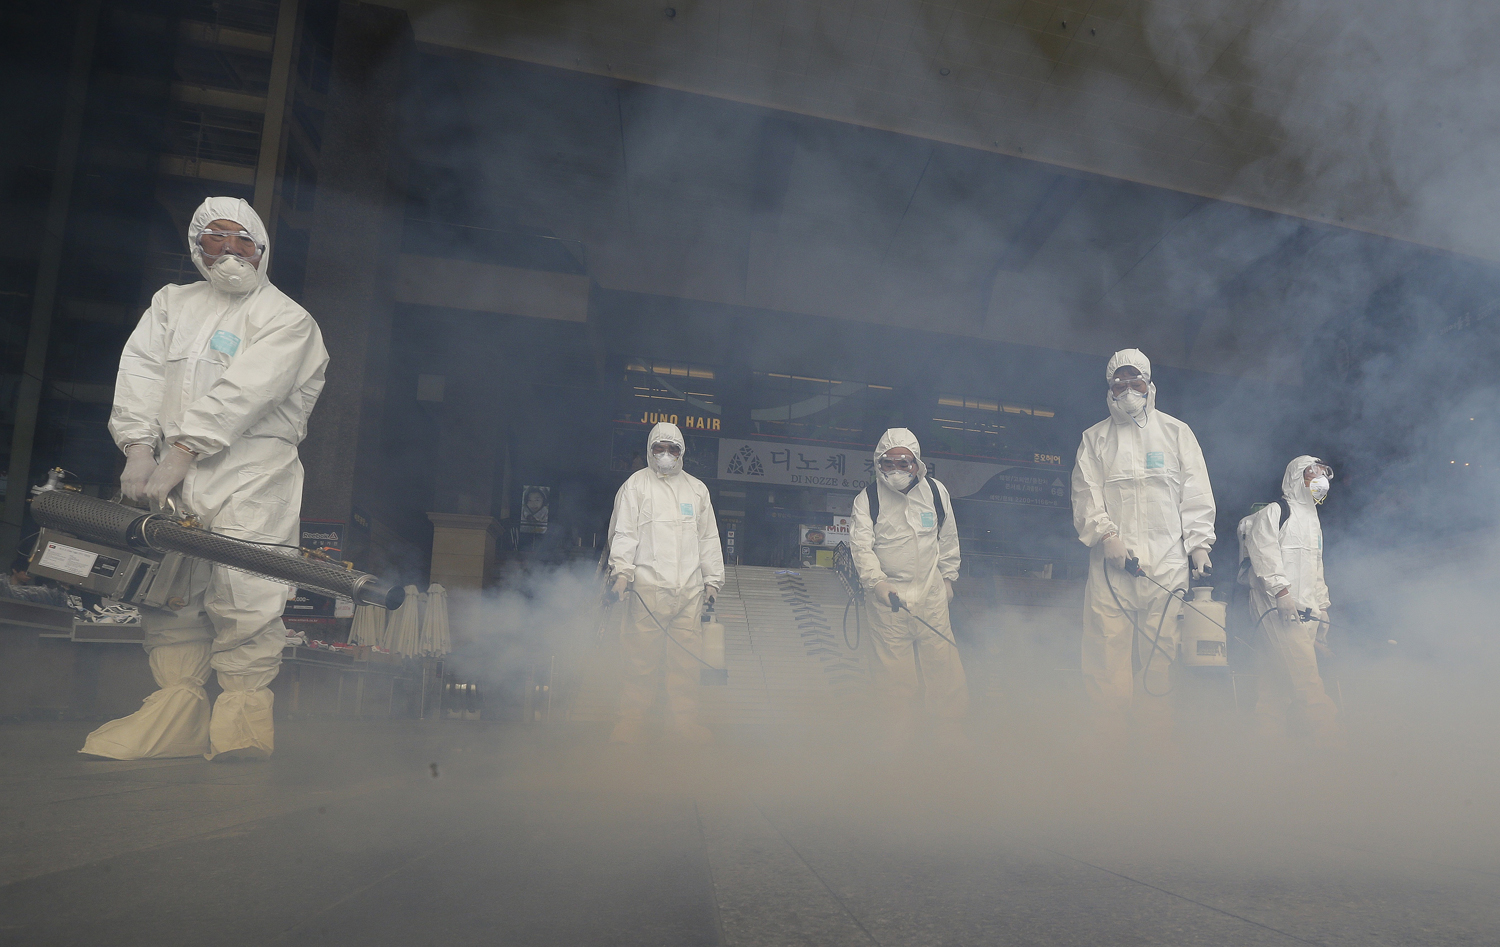 A worker wearing protective gear fumigates to help halt the spread of the MERS virus outside Wangsimni Subway Station in Seoul on June 11, 2015